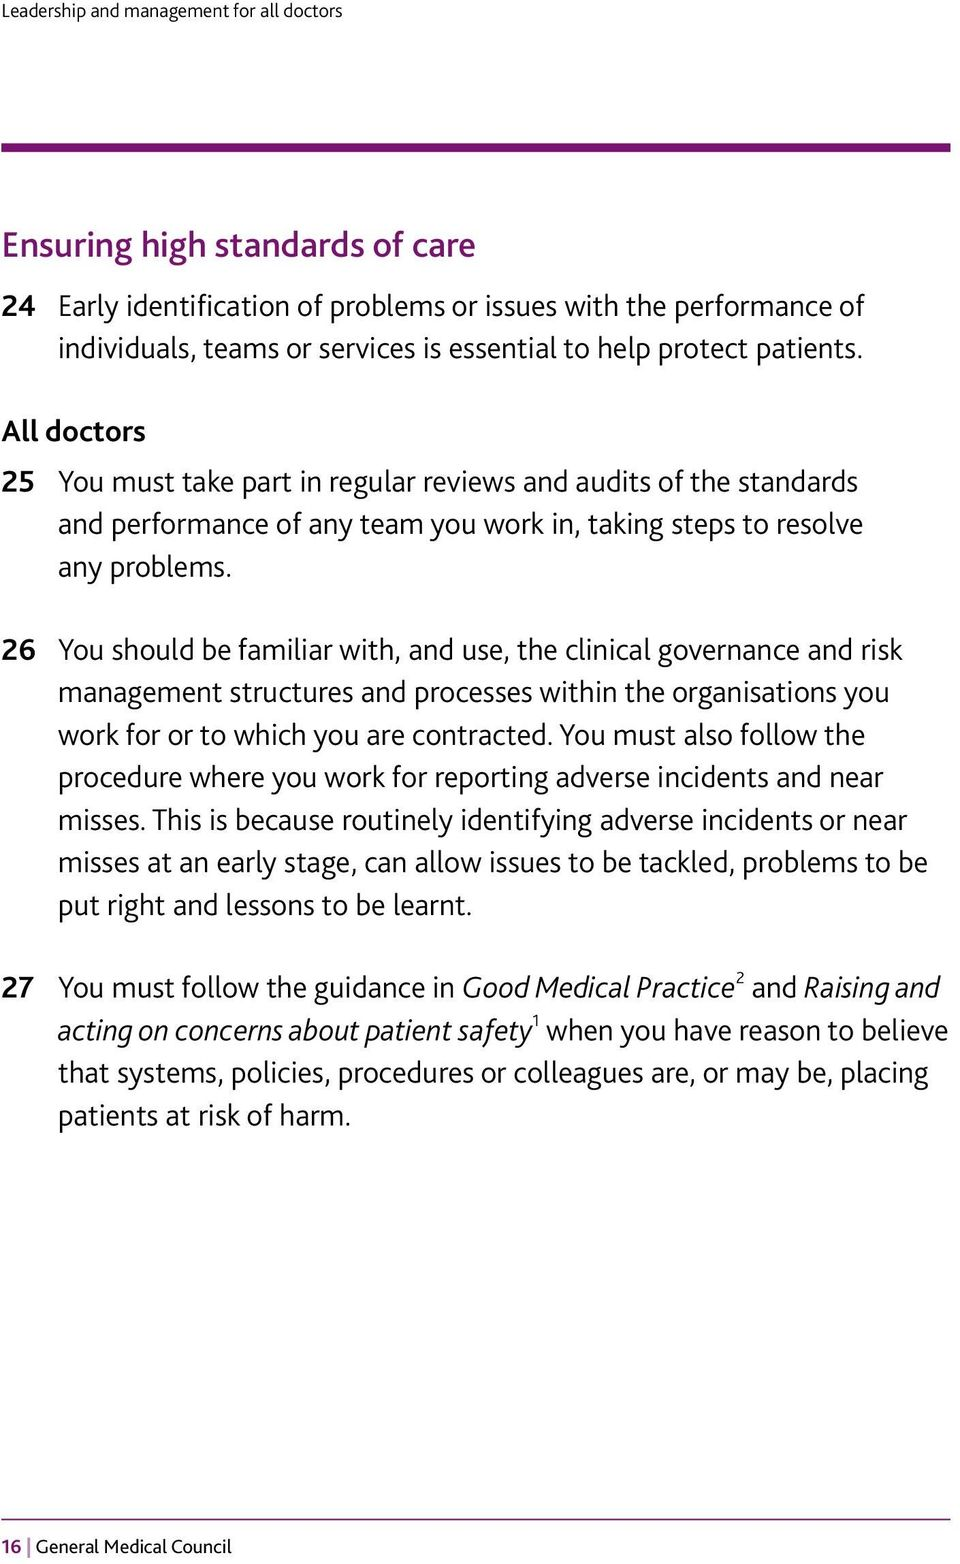 26 You should be familiar with, and use, the clinical governance and risk management structures and processes within the organisations you work for or to which you are contracted.